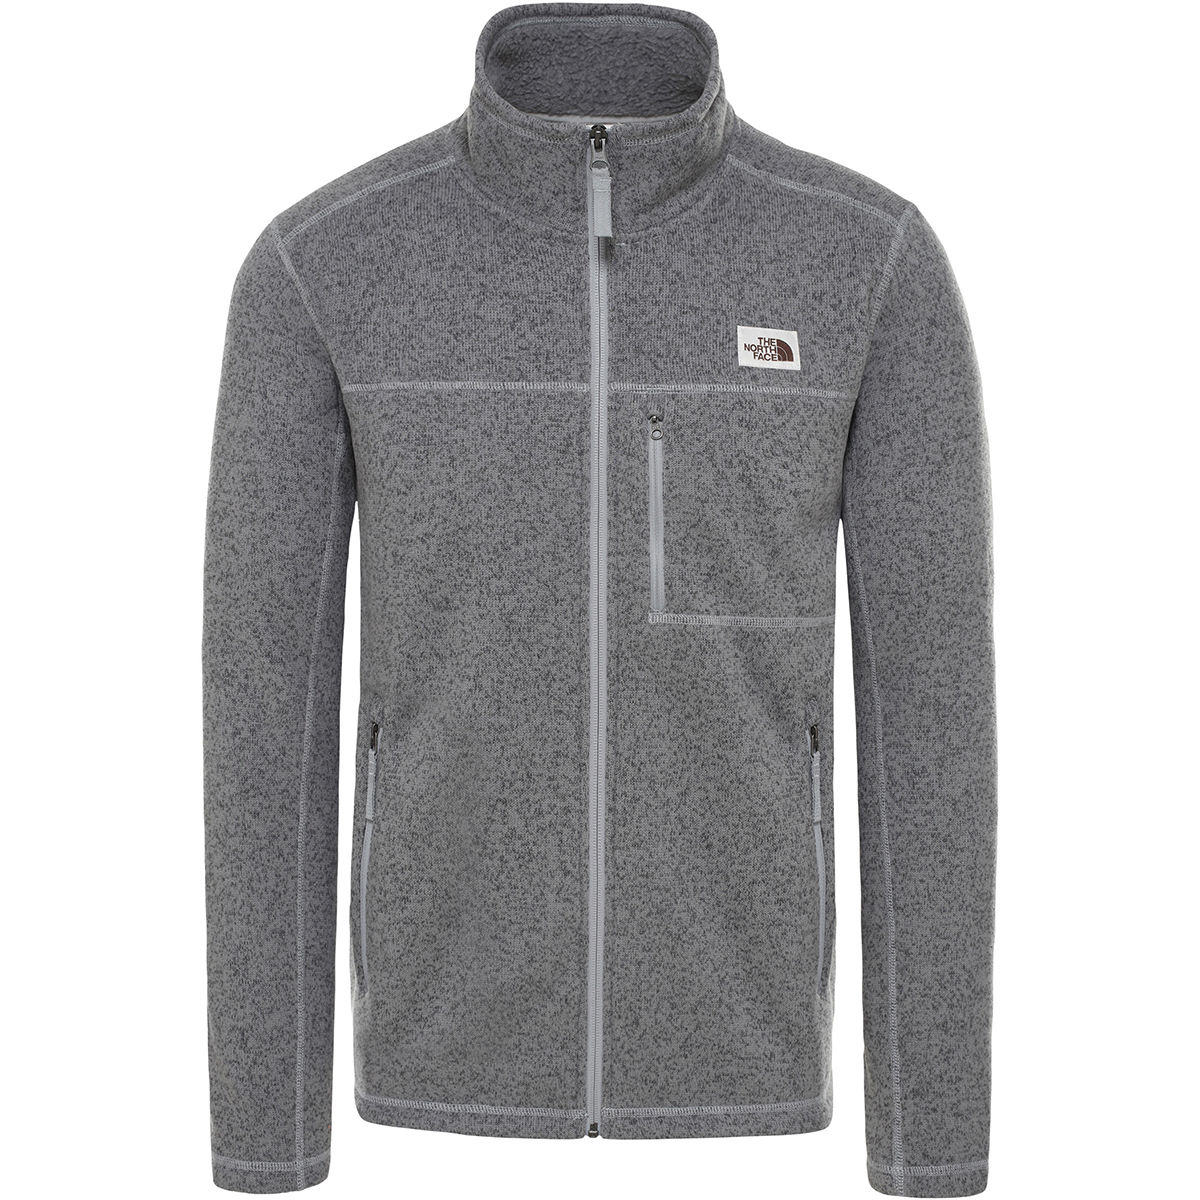 The North Face The North Face Gordon Lyons (Full Zip) Fleece   Hoodies